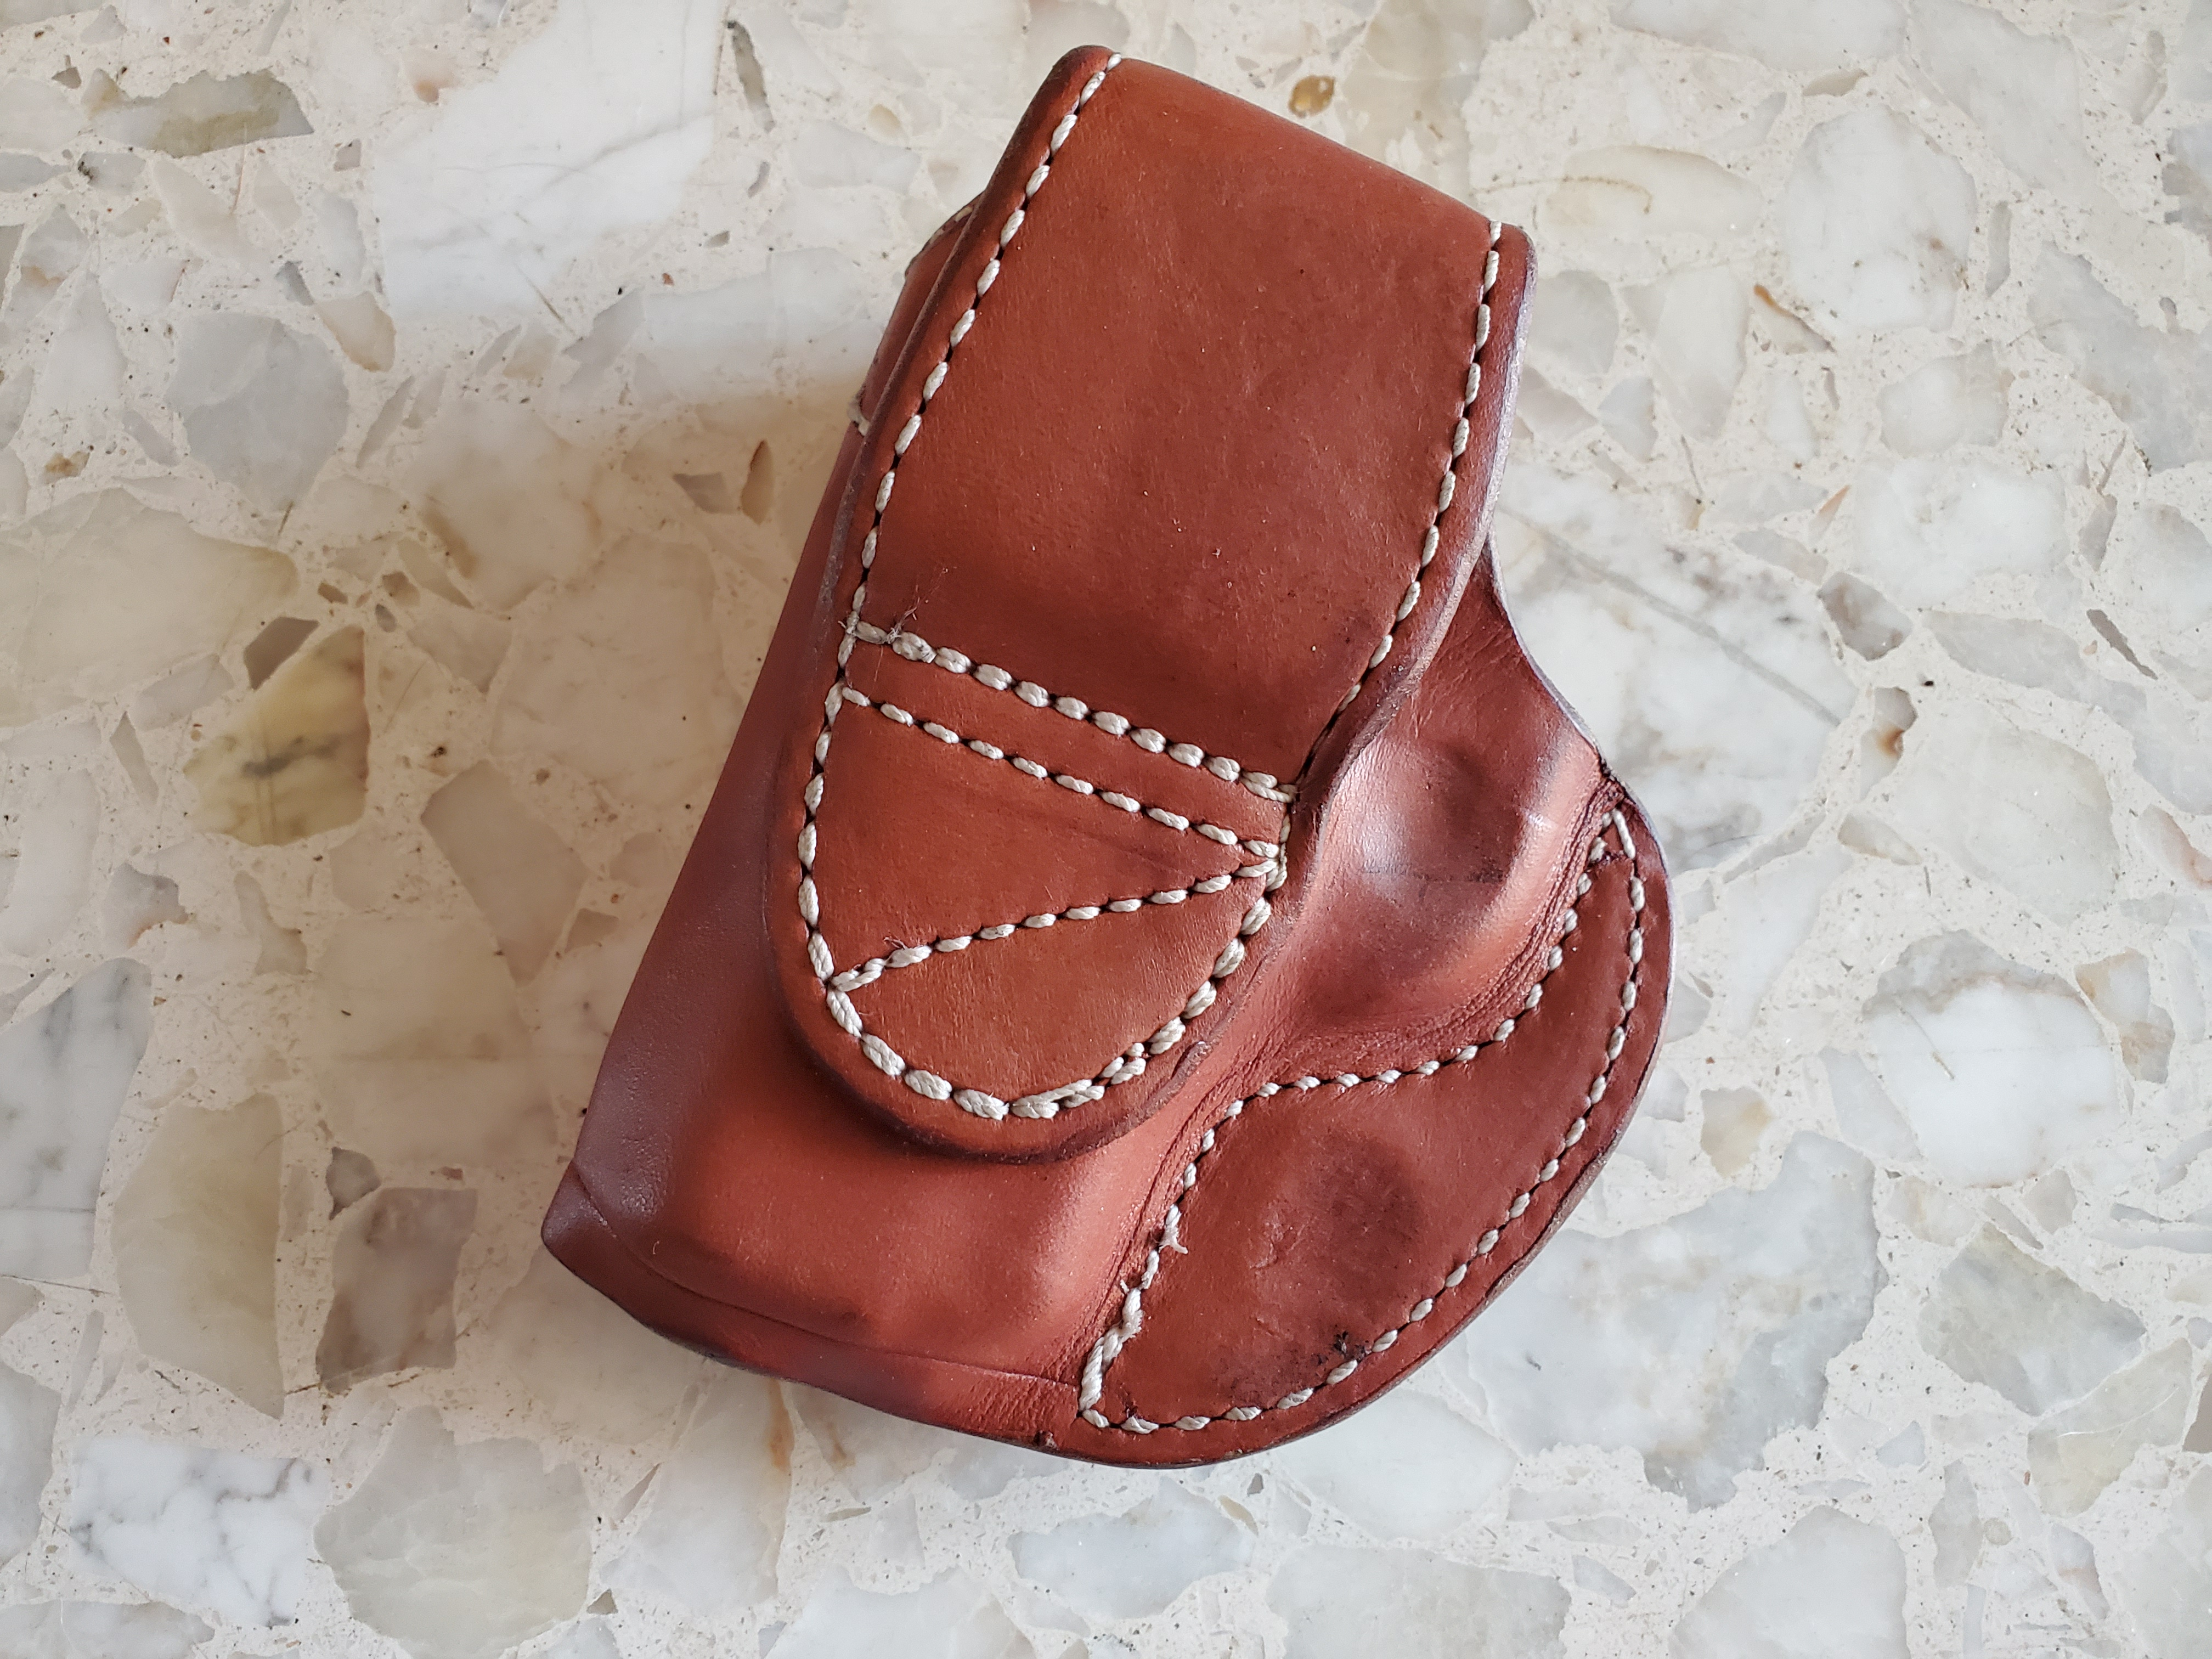 Selling New Nelson Holsters- 10% off Retail and No Wait-20190508_170747.jpg